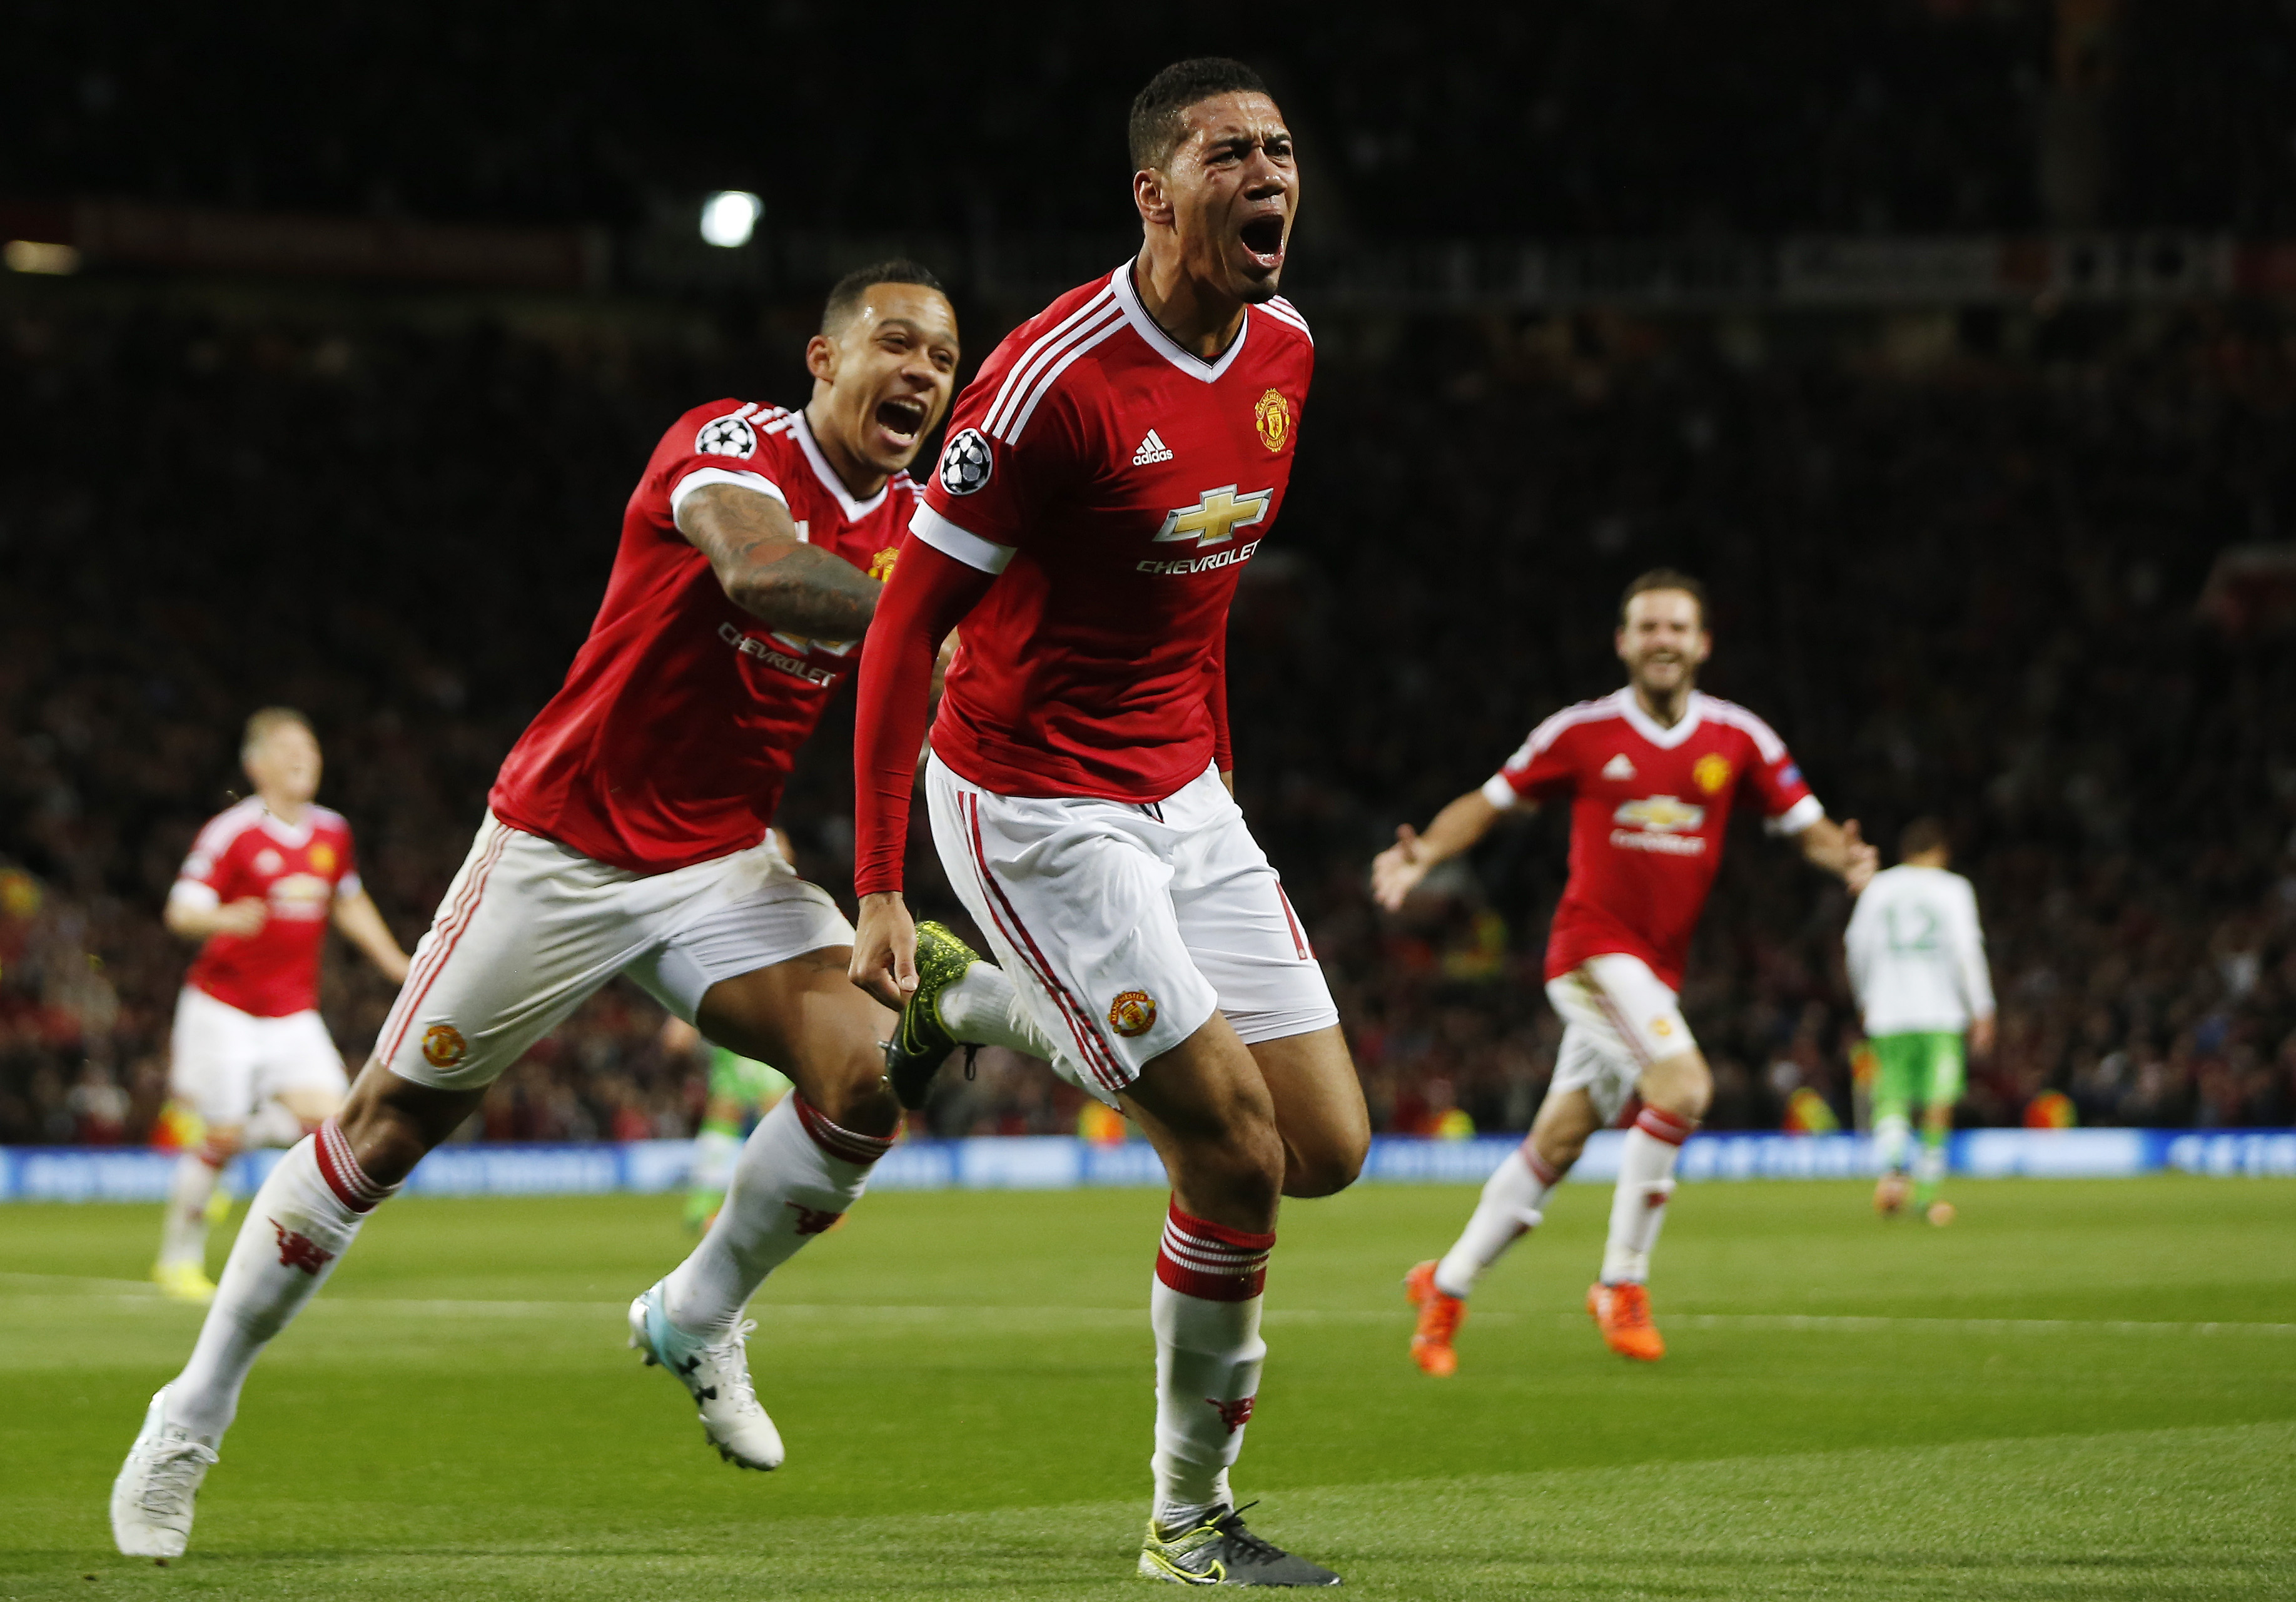 Football - Manchester United v VfL Wolfsburg - UEFA Champions League Group Stage - Group B - Old Trafford, Manchester, England - 30/9/15nChris Smalling celebrates scoring the second goal for Manchester United nAction Images via Reuters / Lee SmithnLivepicnEDITORIAL USE ONLY.